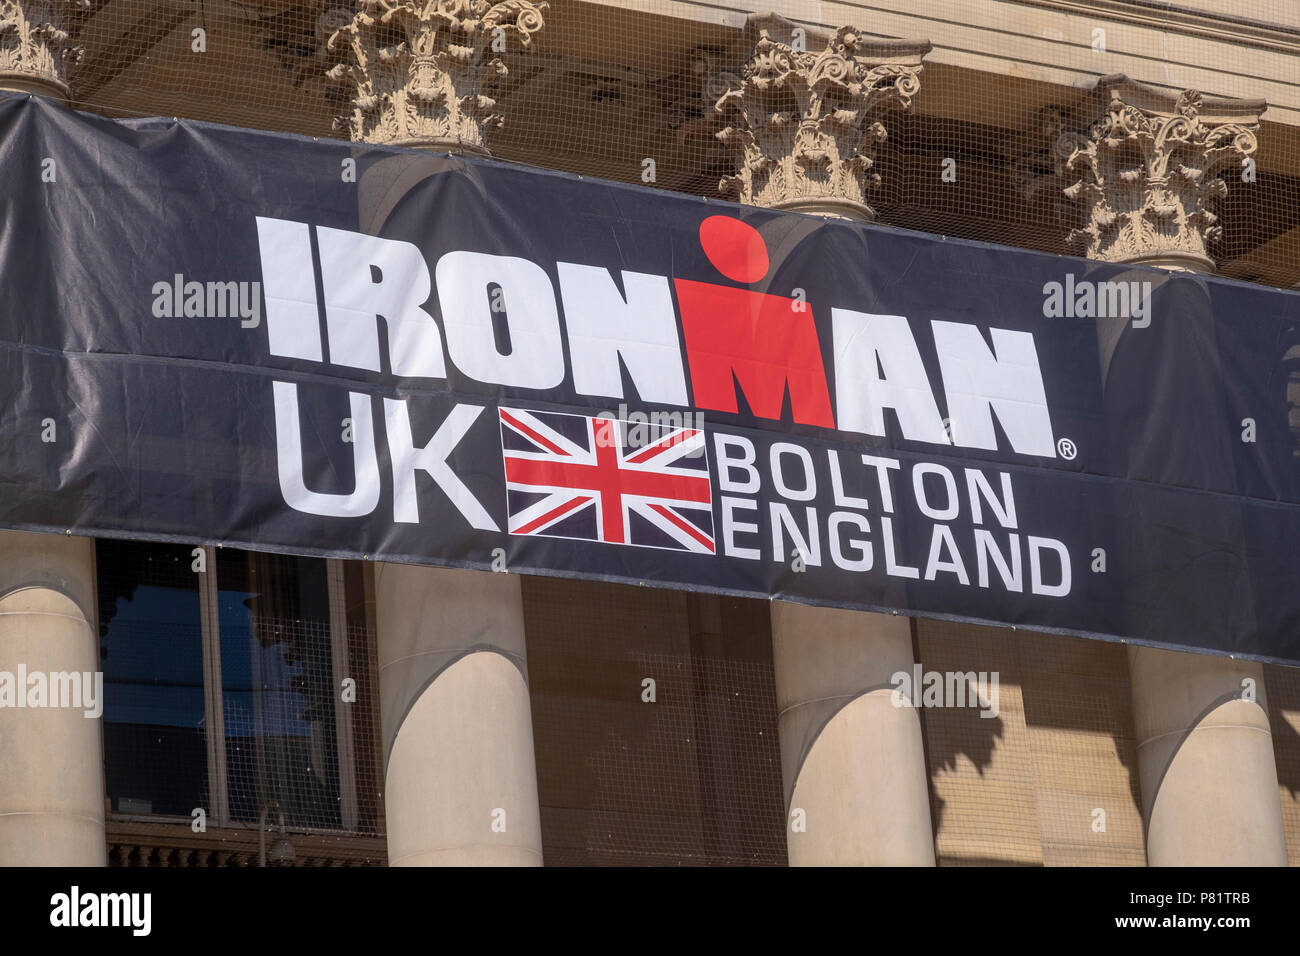 Ironman sign on bolton town hall Stock Photo